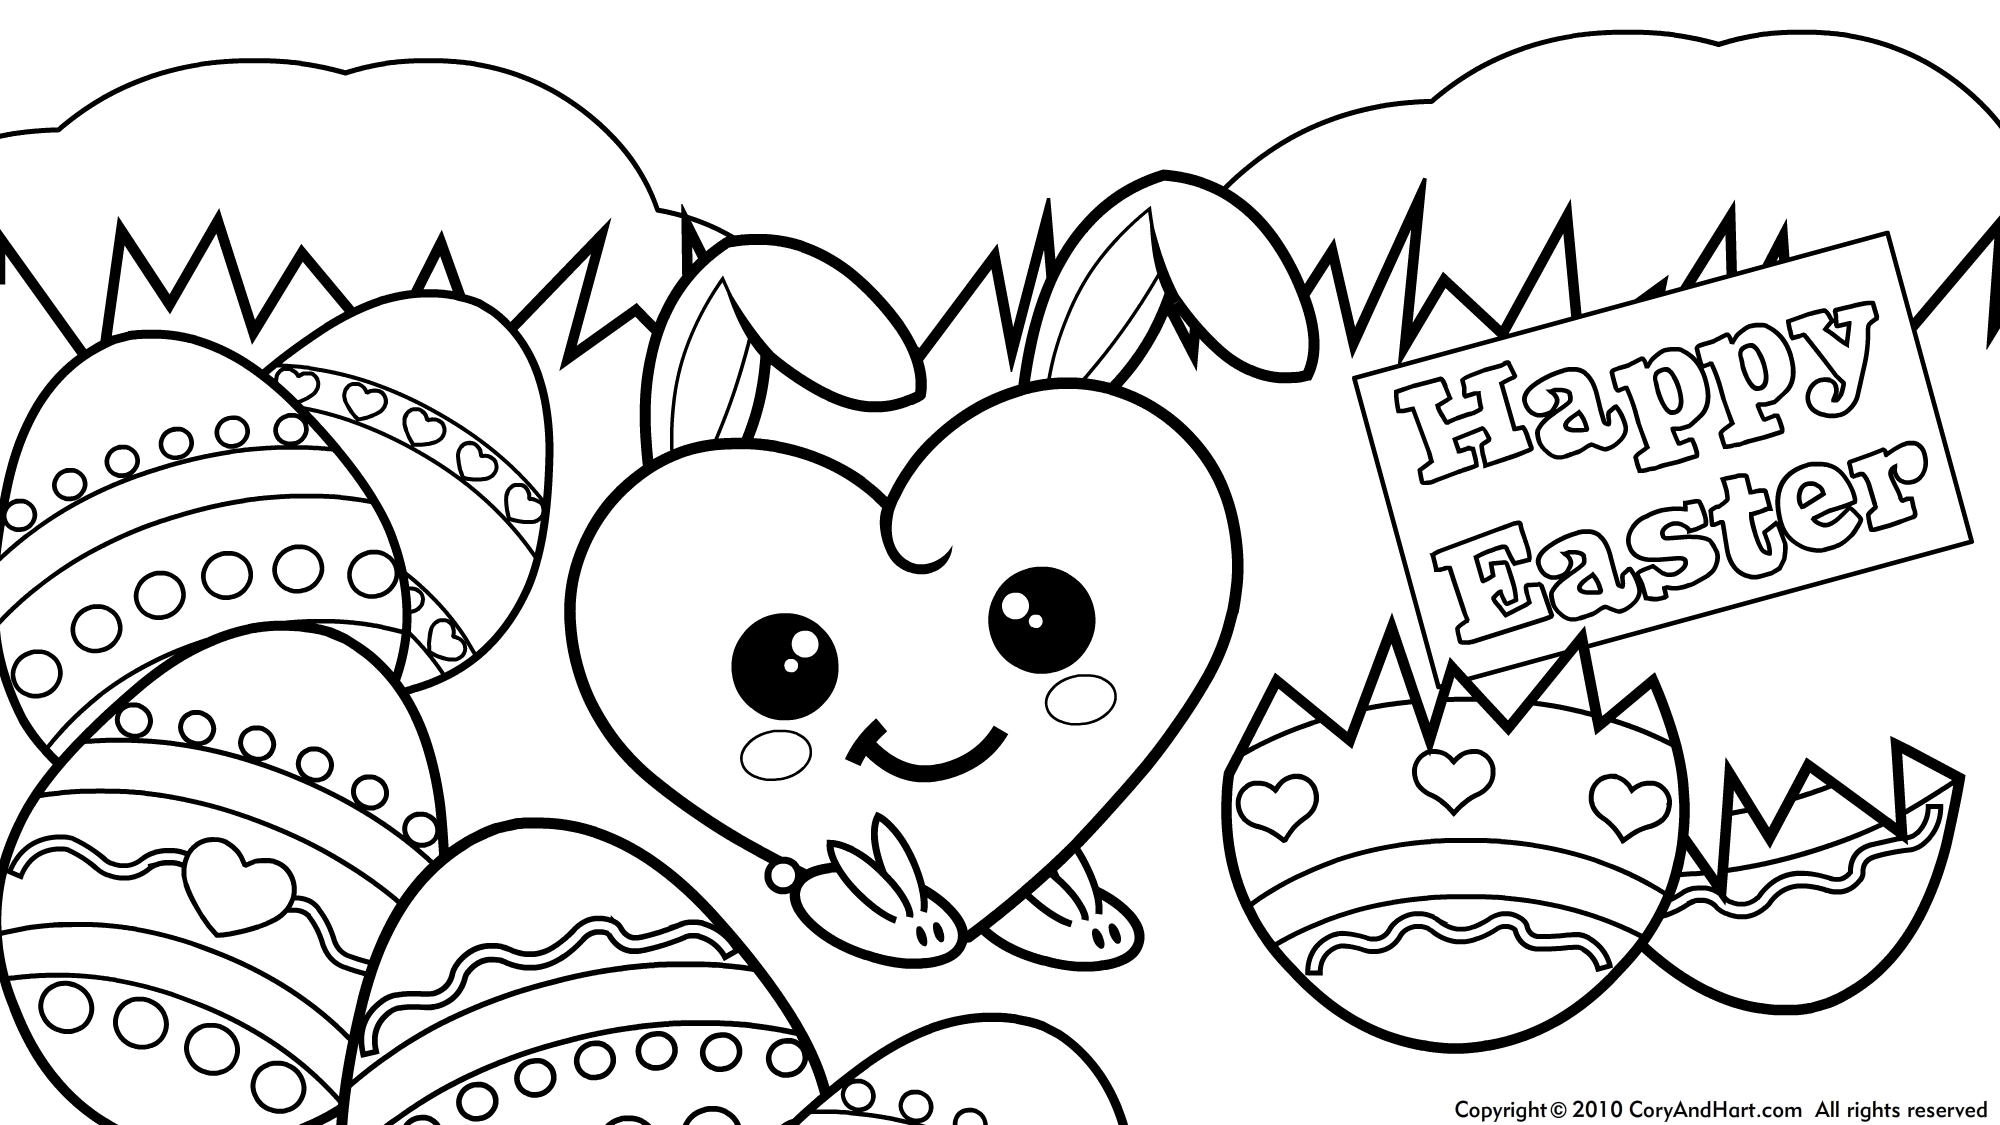 357x500 Cute Easter Bunny Holds Thumb Up And Winks Coloring Page Stock 2000x1125 Love Is All Around